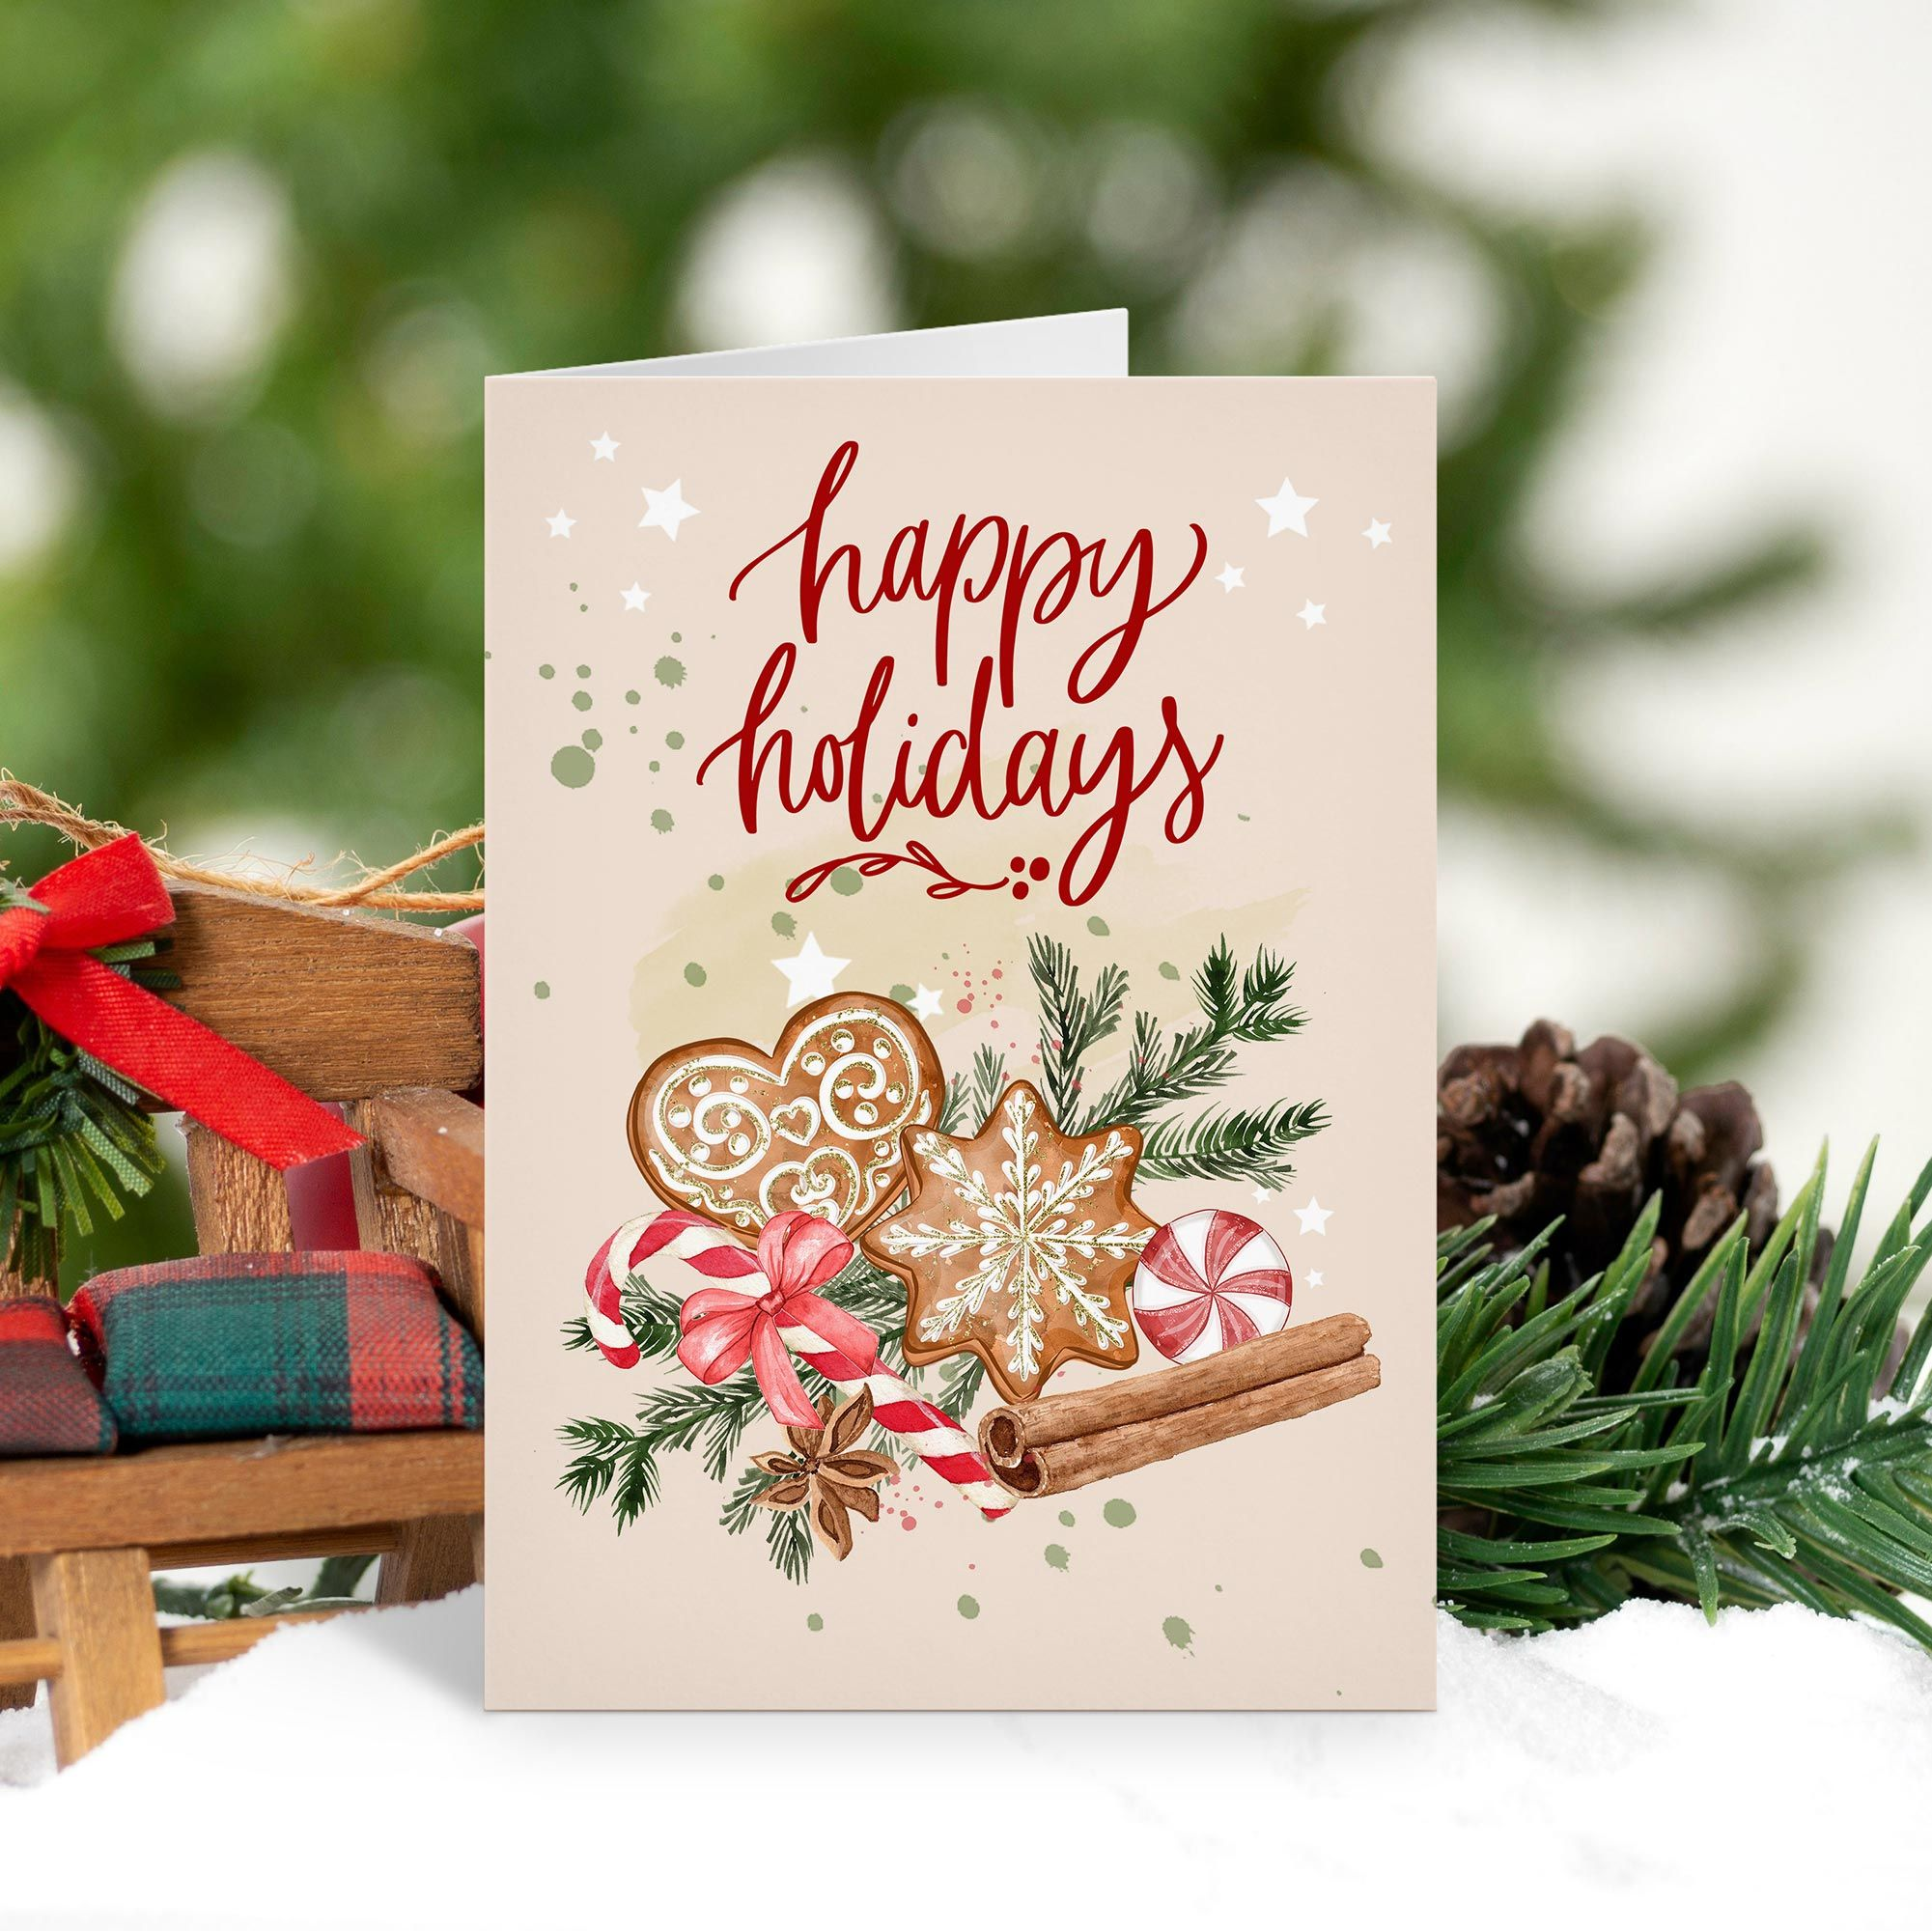 Happy Holidays Cookies Christmas Holiday Card Zazzle Com In 2021 Happy Holiday Cards Christmas Holiday Cards Christmas Greeting Cards